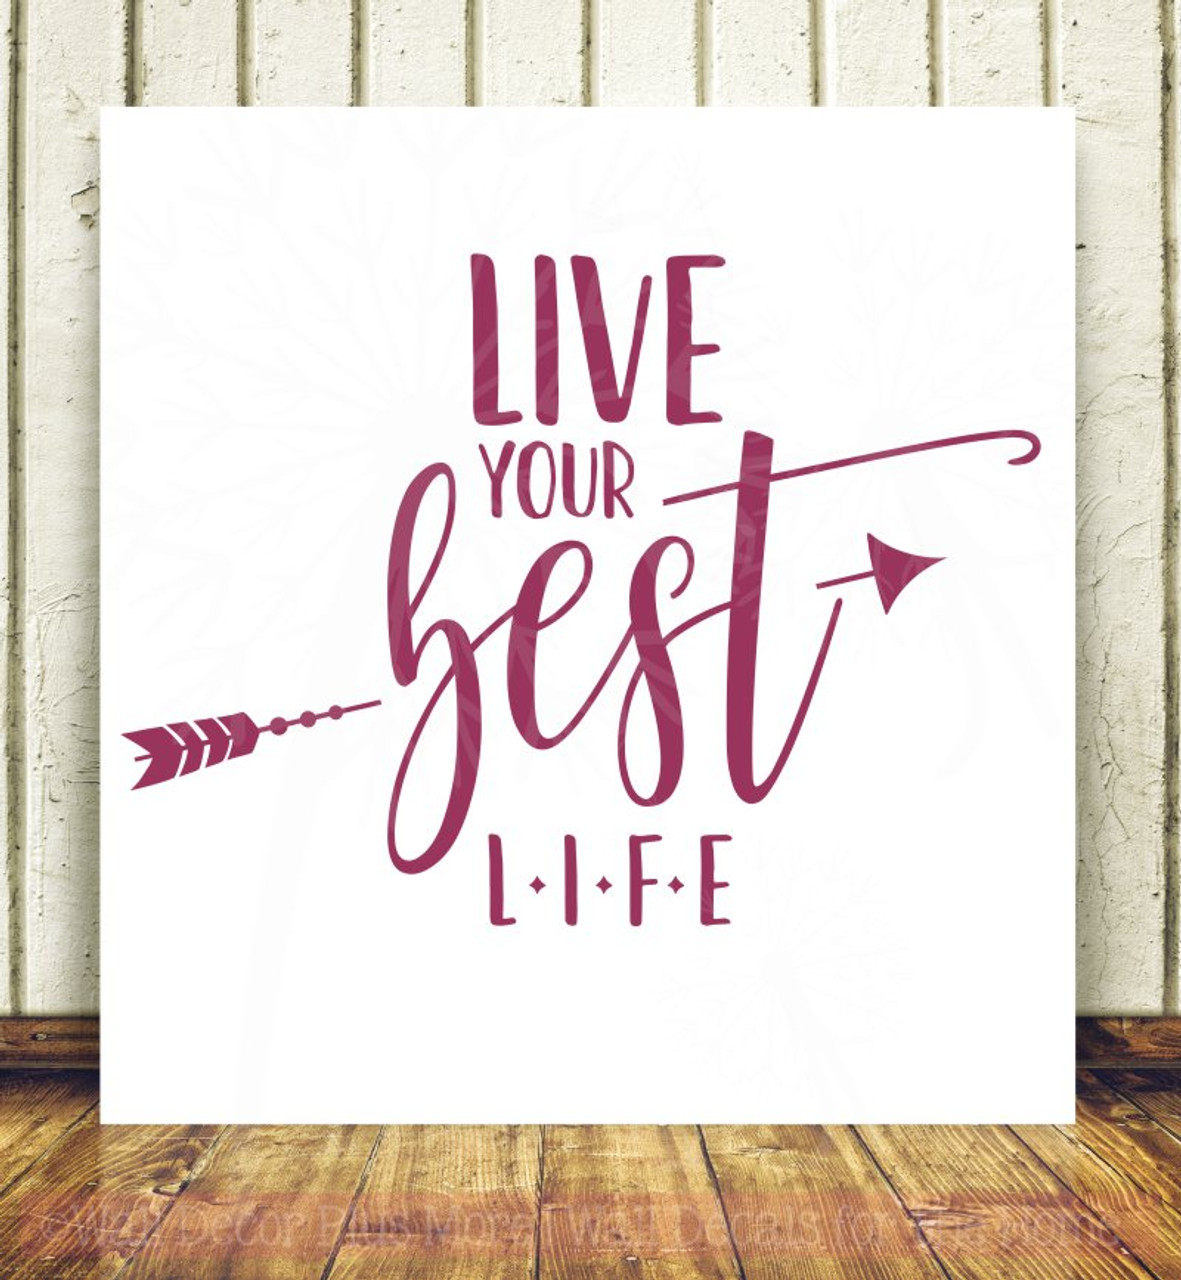 Inspirational Quotes Motivation: Live Your Best Life Inspirational Wall Quote Stickers